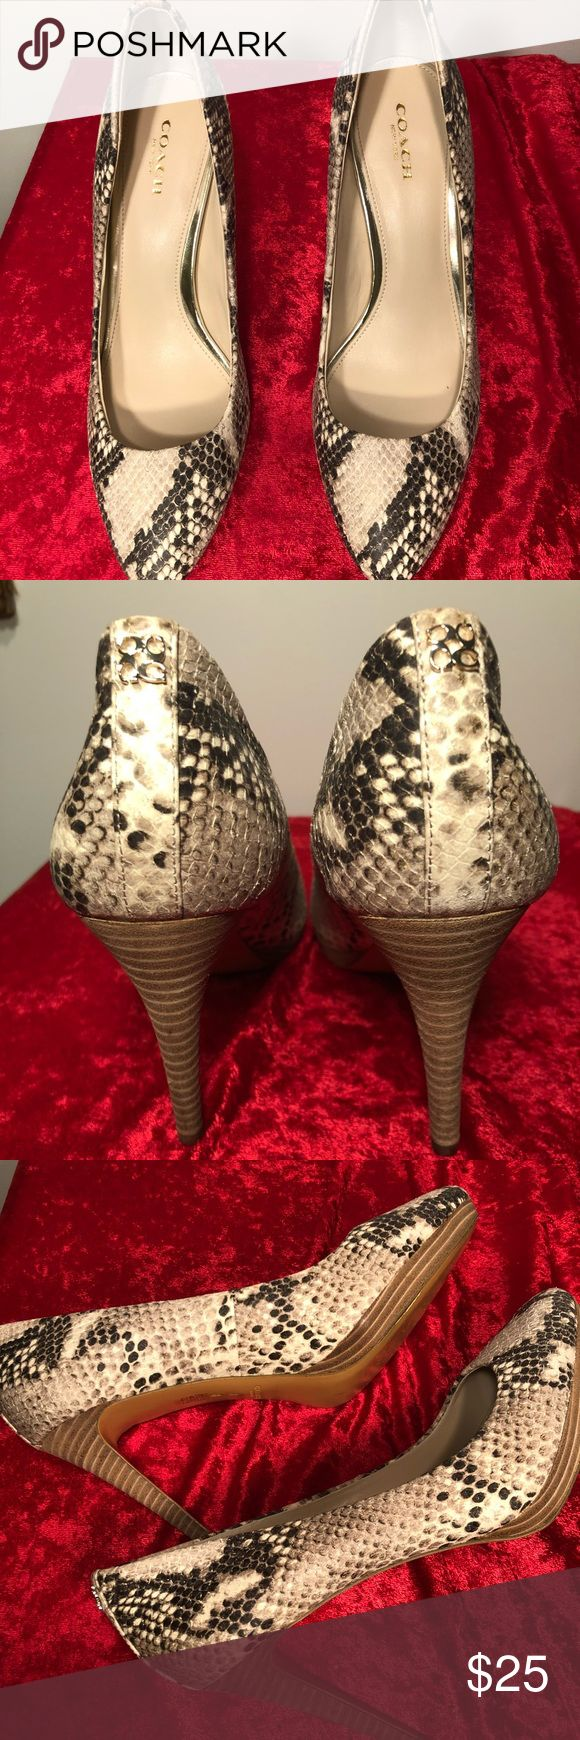 Coach Animal Print High Heels Coach animal-print( python) high heels. No box. The shoes only show signs of wear on the soles ( please refer to pics!) Coach Shoes Heels